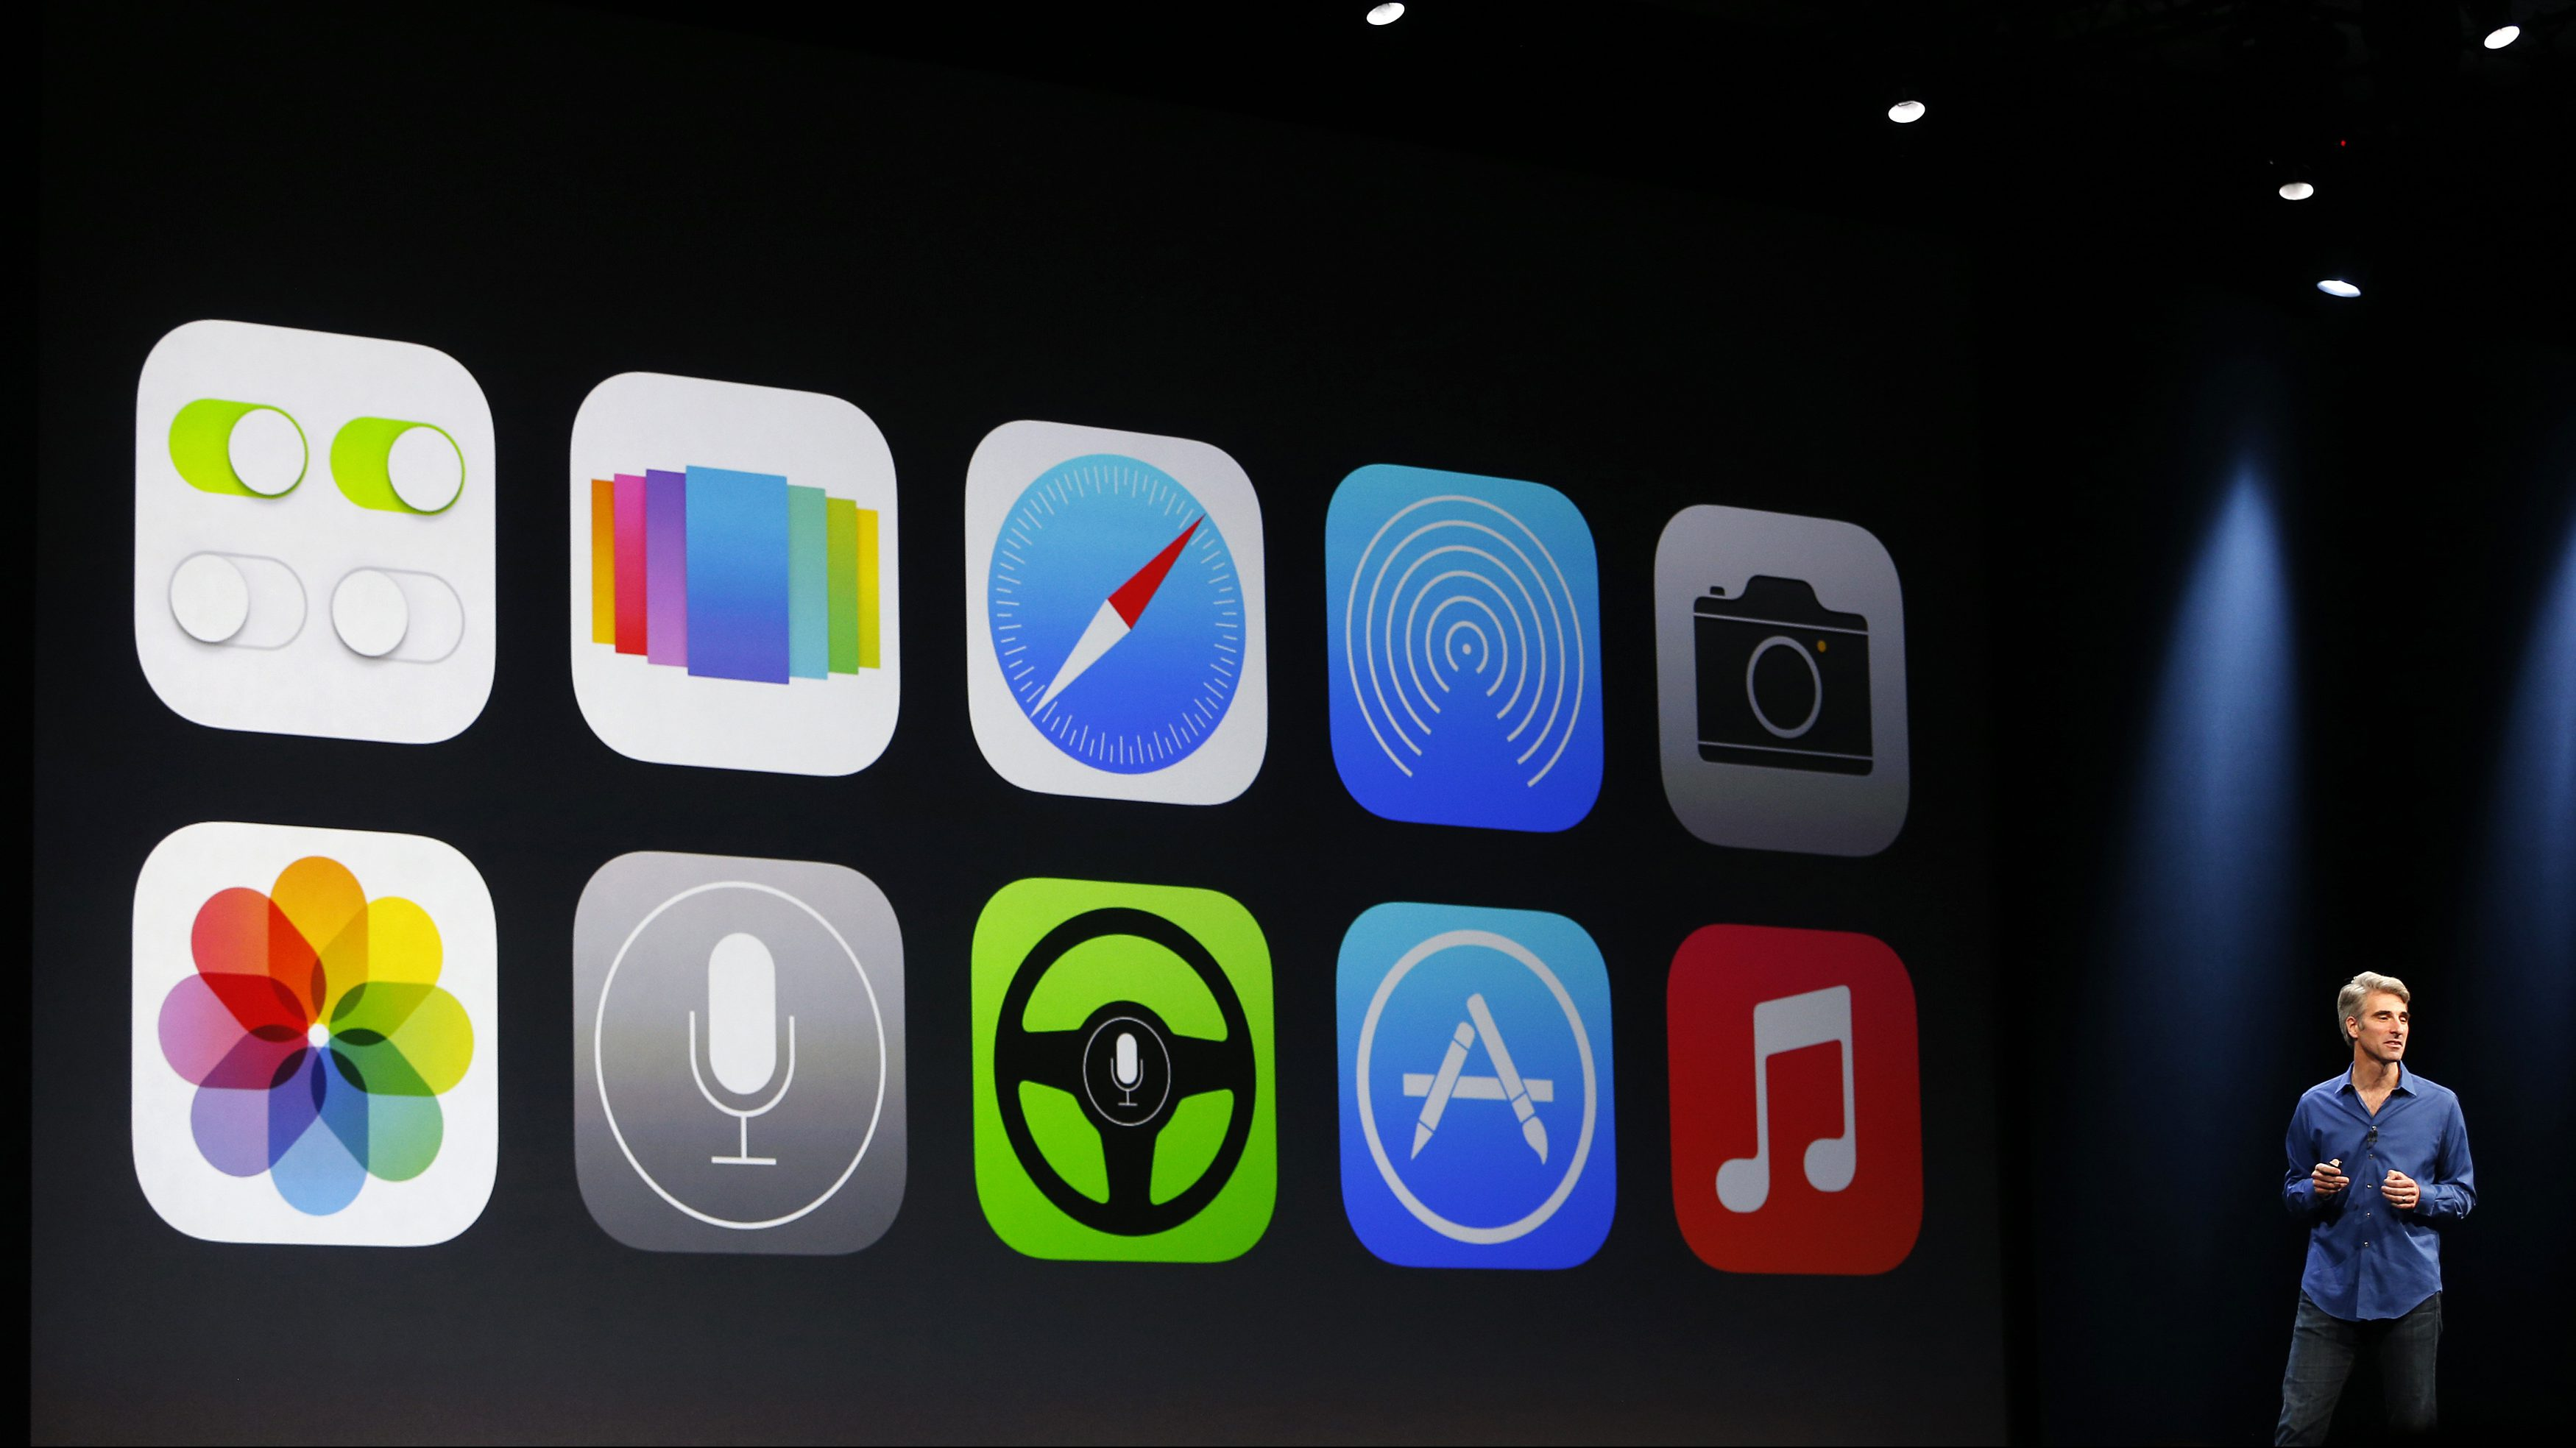 New Apple iOS 7 features are displayed on screen during Apple Worldwide Developers Conference (WWDC) 2013 in San Francisco, California June 10, 2013.